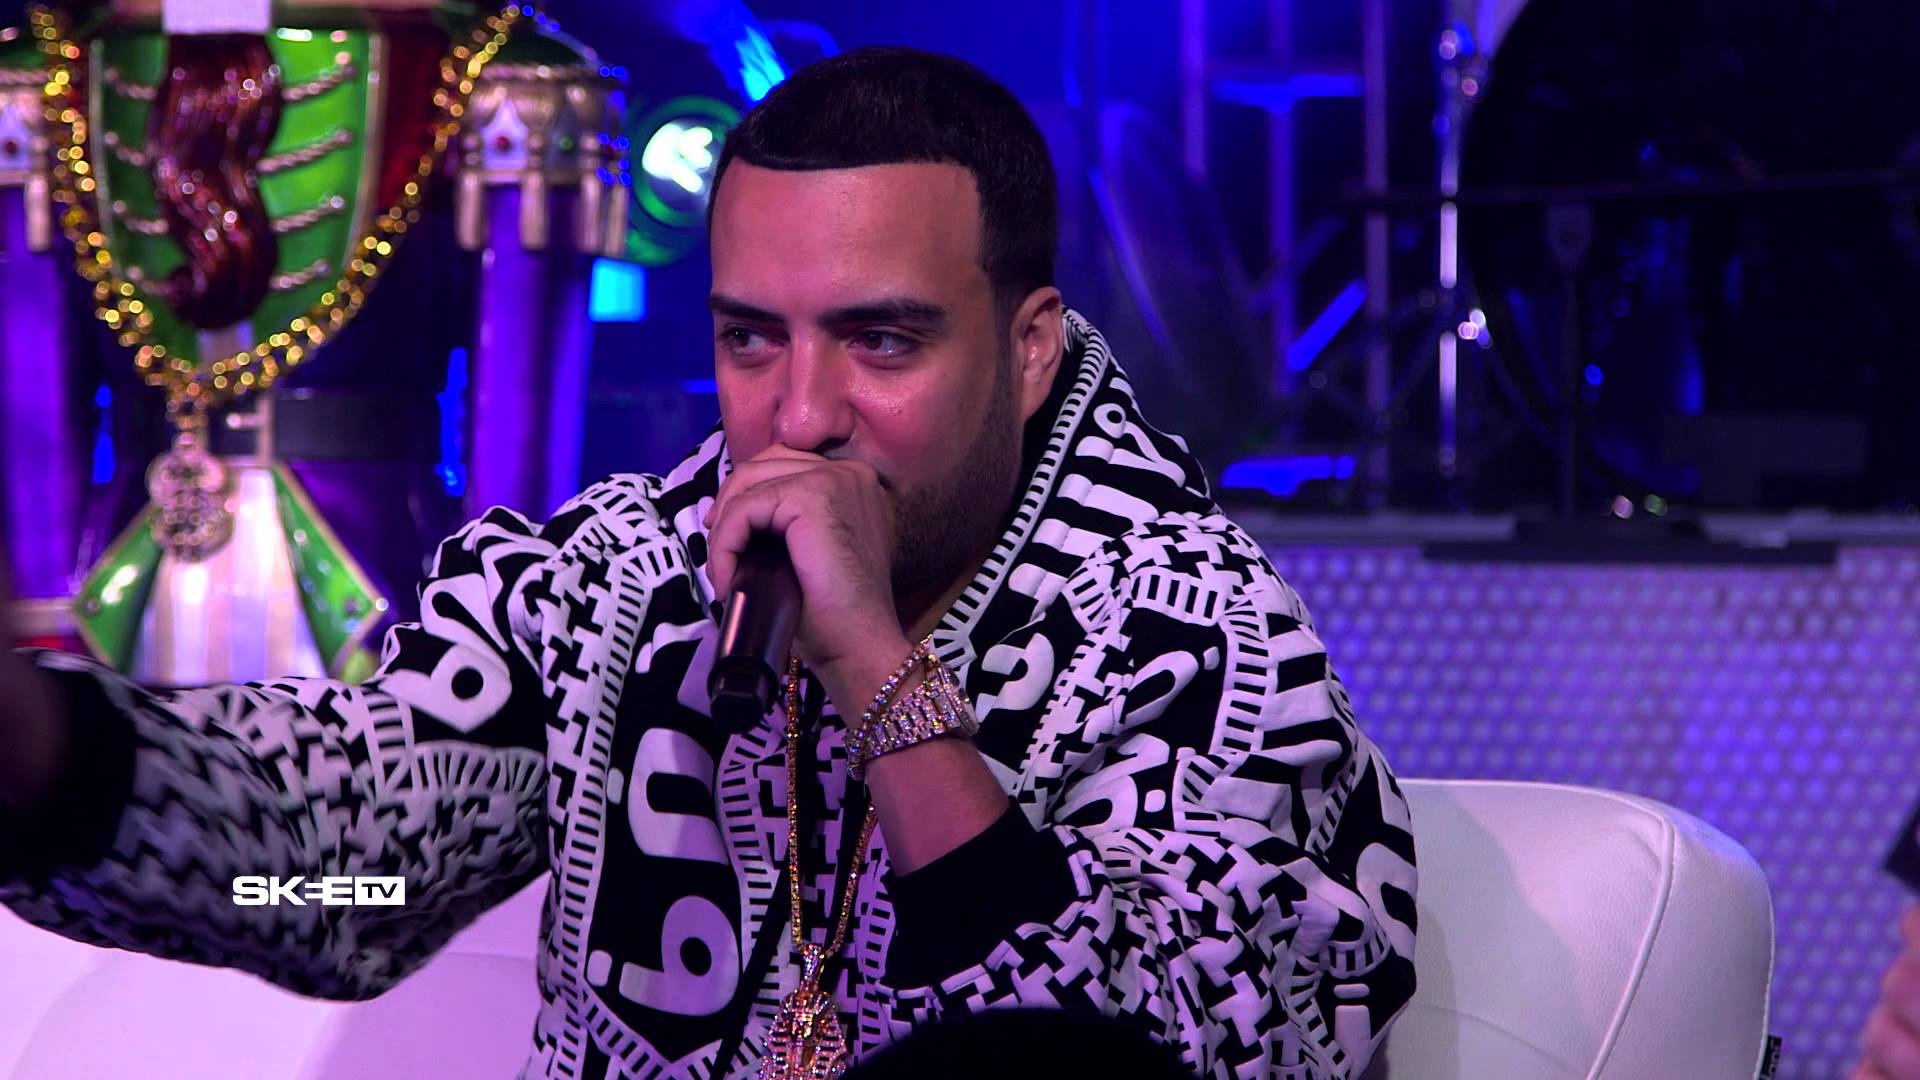 french-montana-interview-with-dj-skee